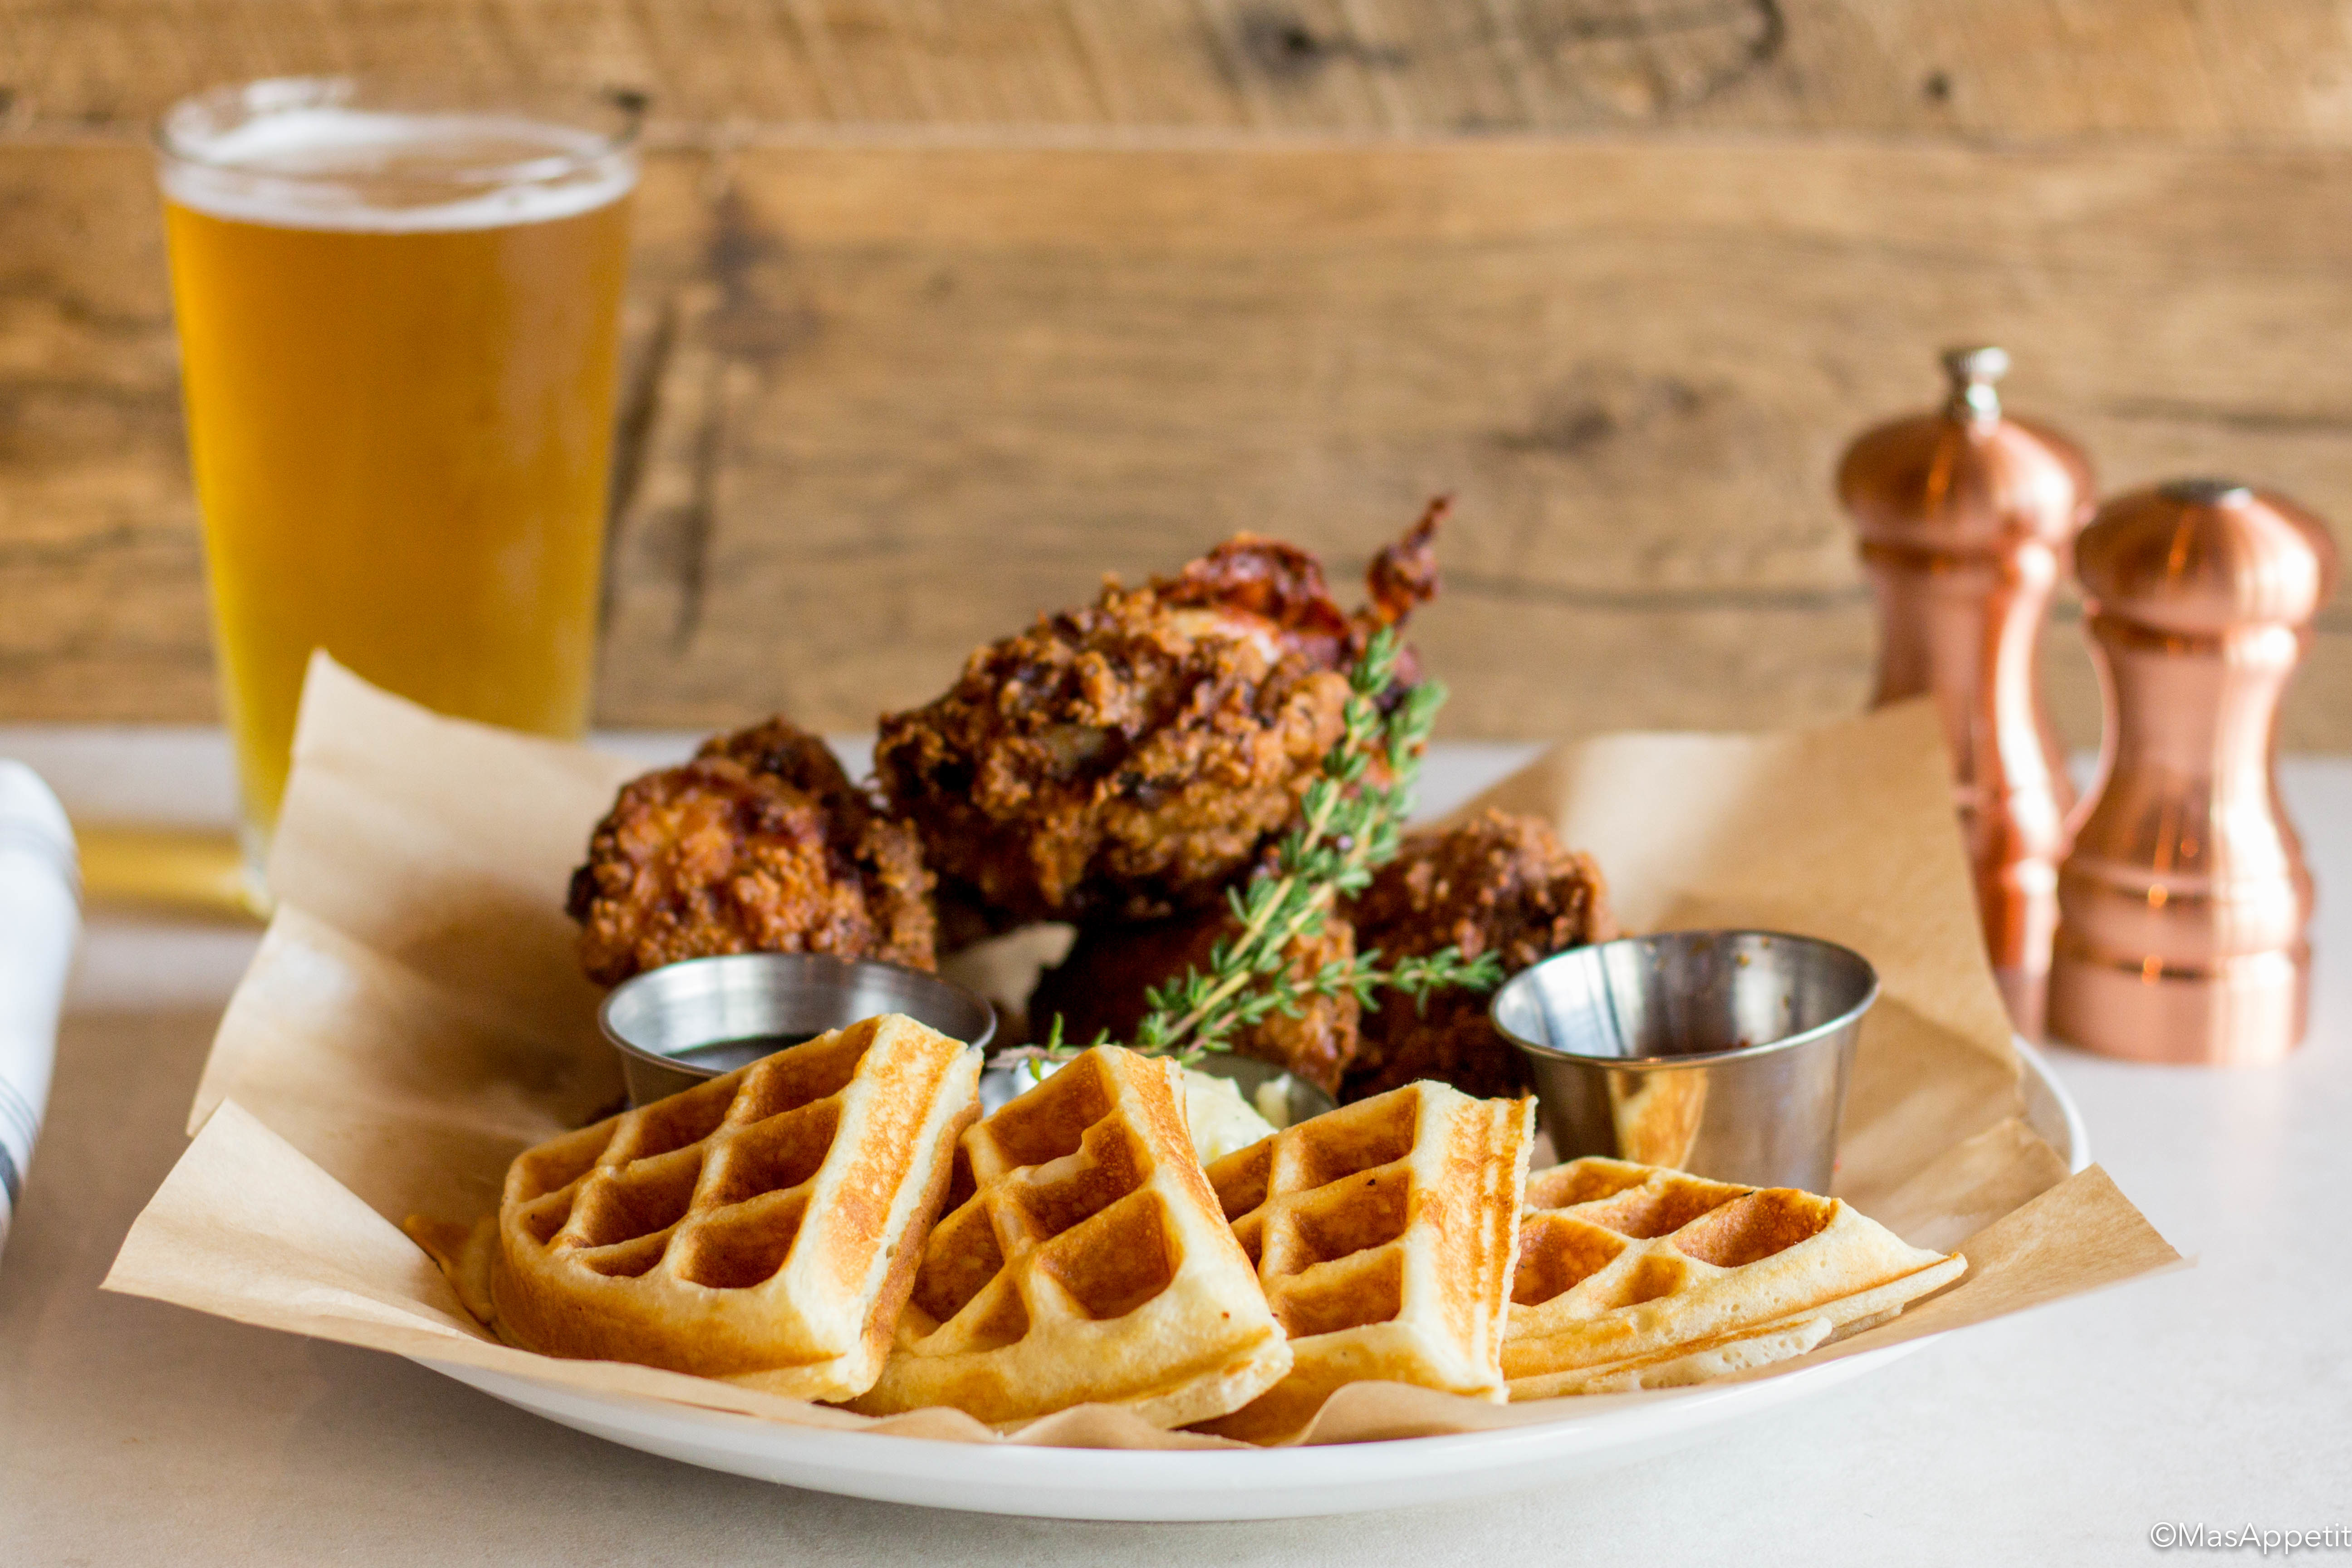 Chicken & waffles (fried chicken, buttermilk waffle, honey-thyme butter, molasses syrup, red pepper jam).